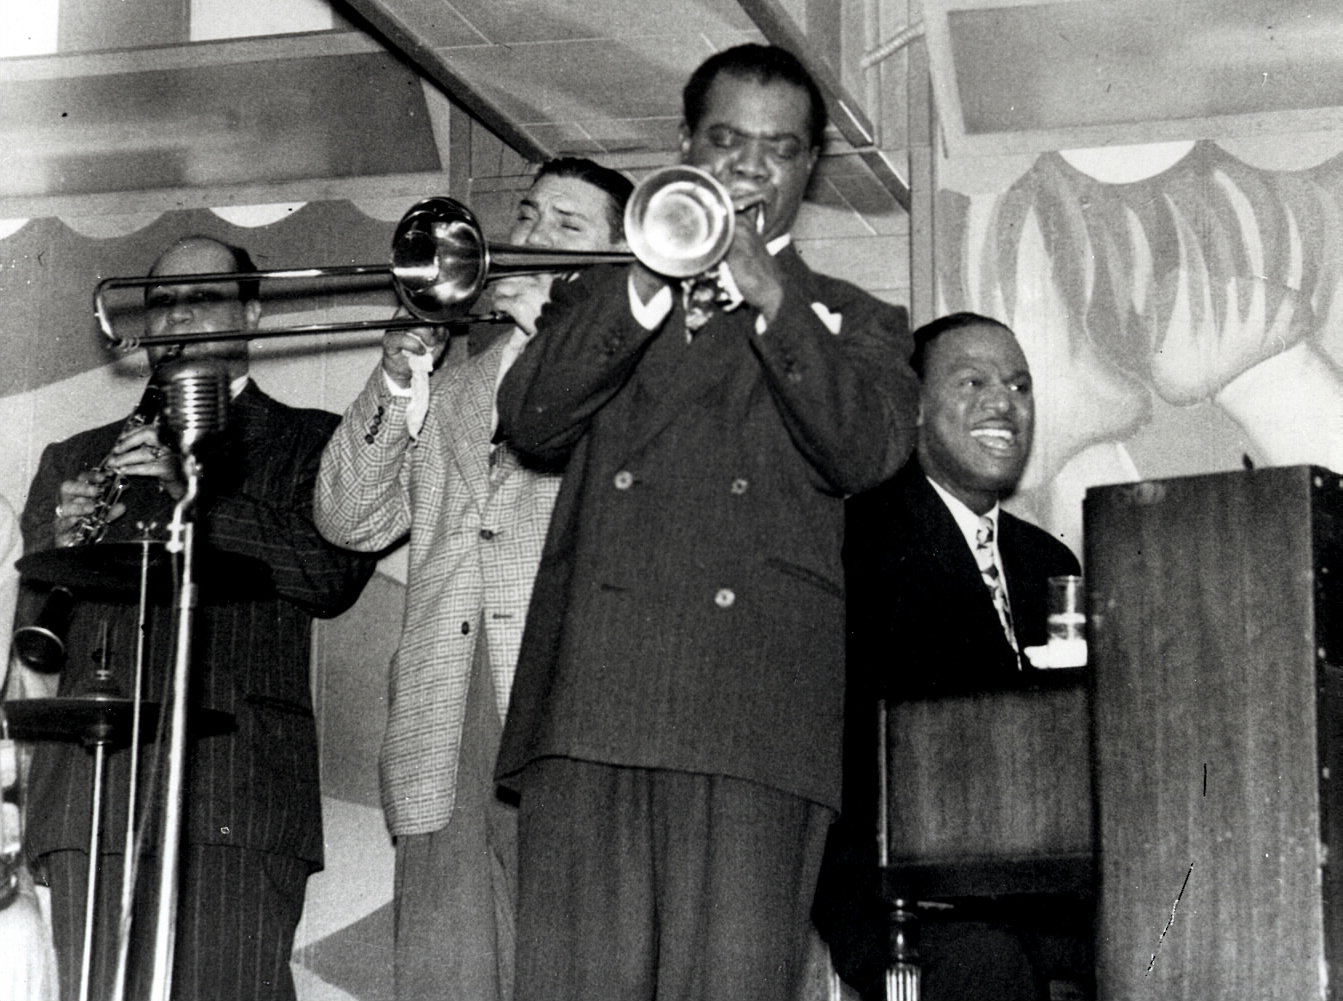 The House History Man: Jazz, Drugs, Murder and the 1940s ... Earl Hines And Louis Armstrong